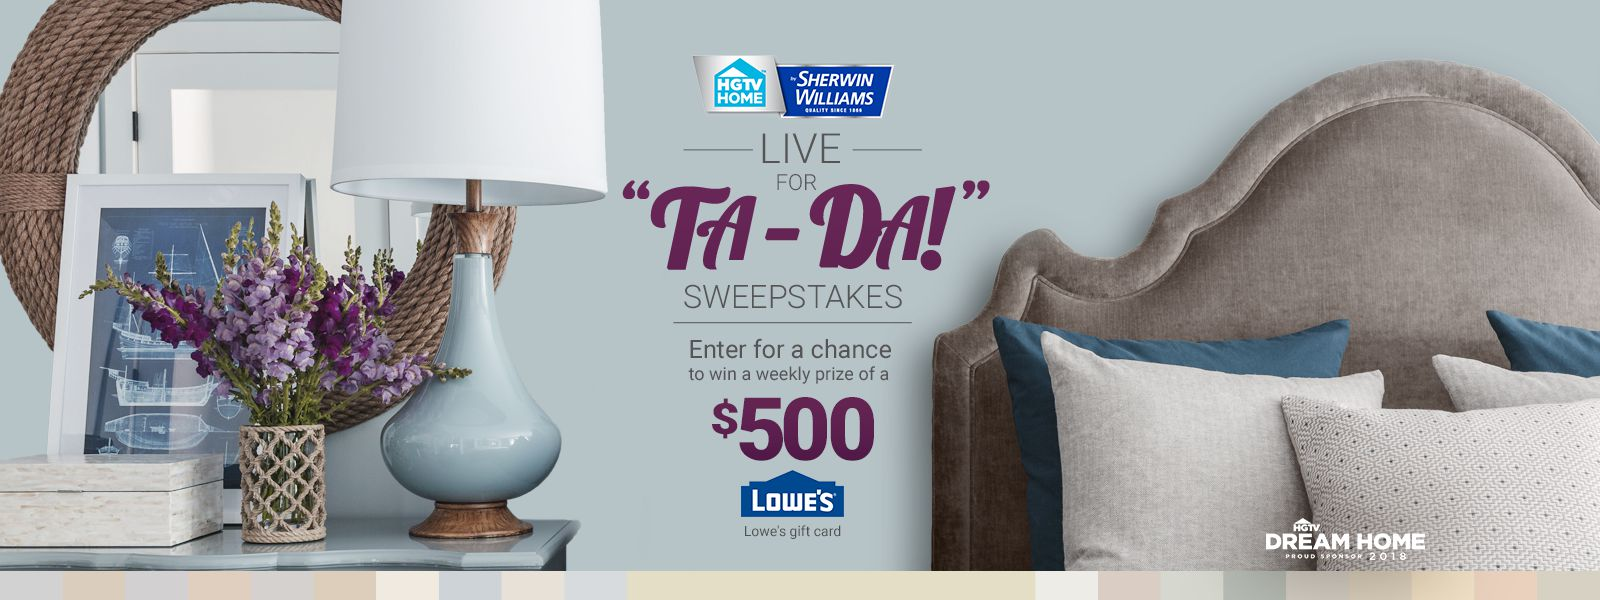 Sherwin Williams Live for Ta da Sweepstakes Enter | Sponsored Sweeps ...